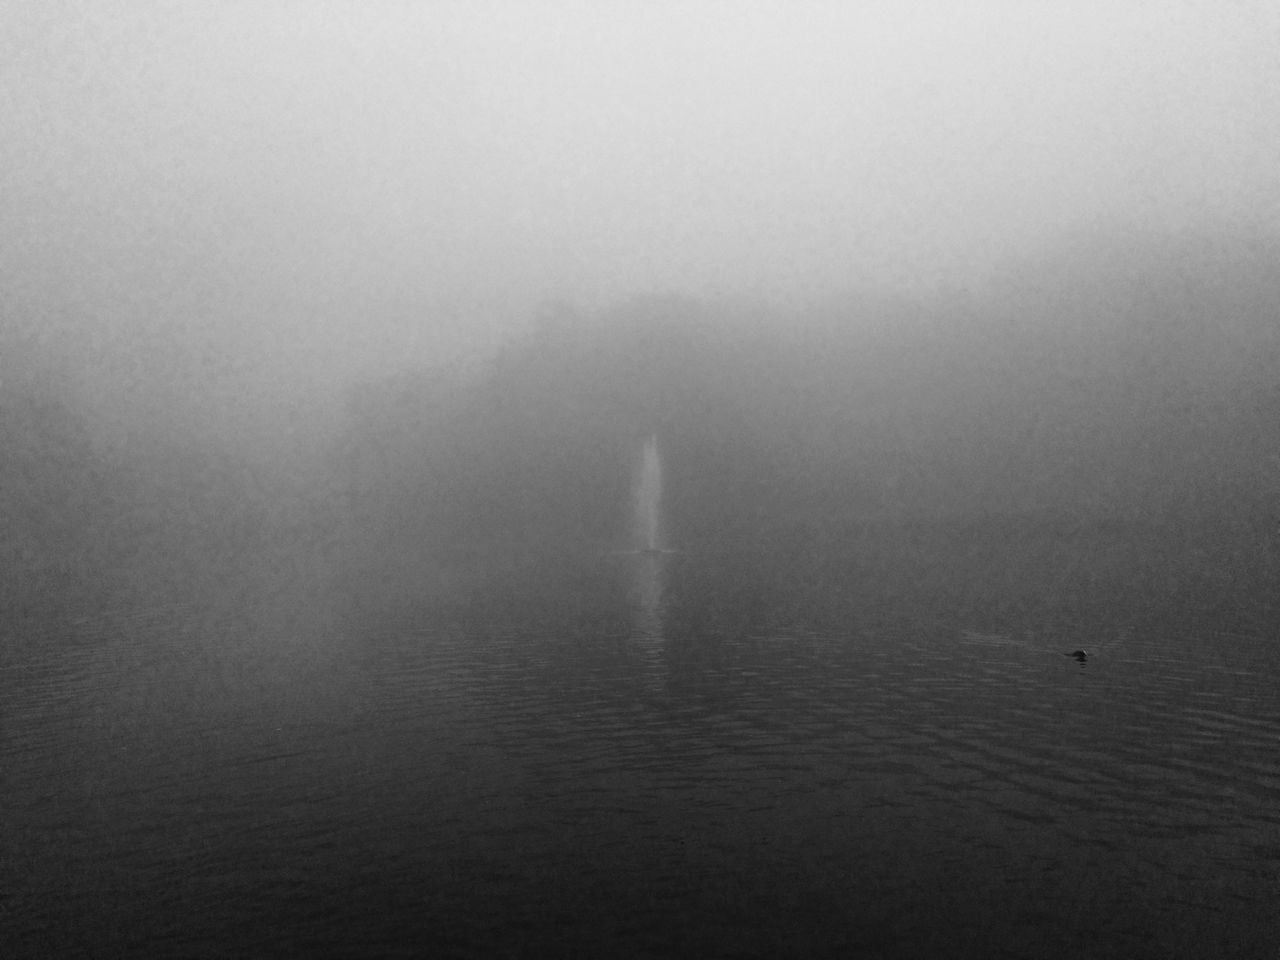 water, foggy, waterfront, beauty in nature, nature, fog, outdoors, day, scenics, tranquility, transportation, no people, sea, sky